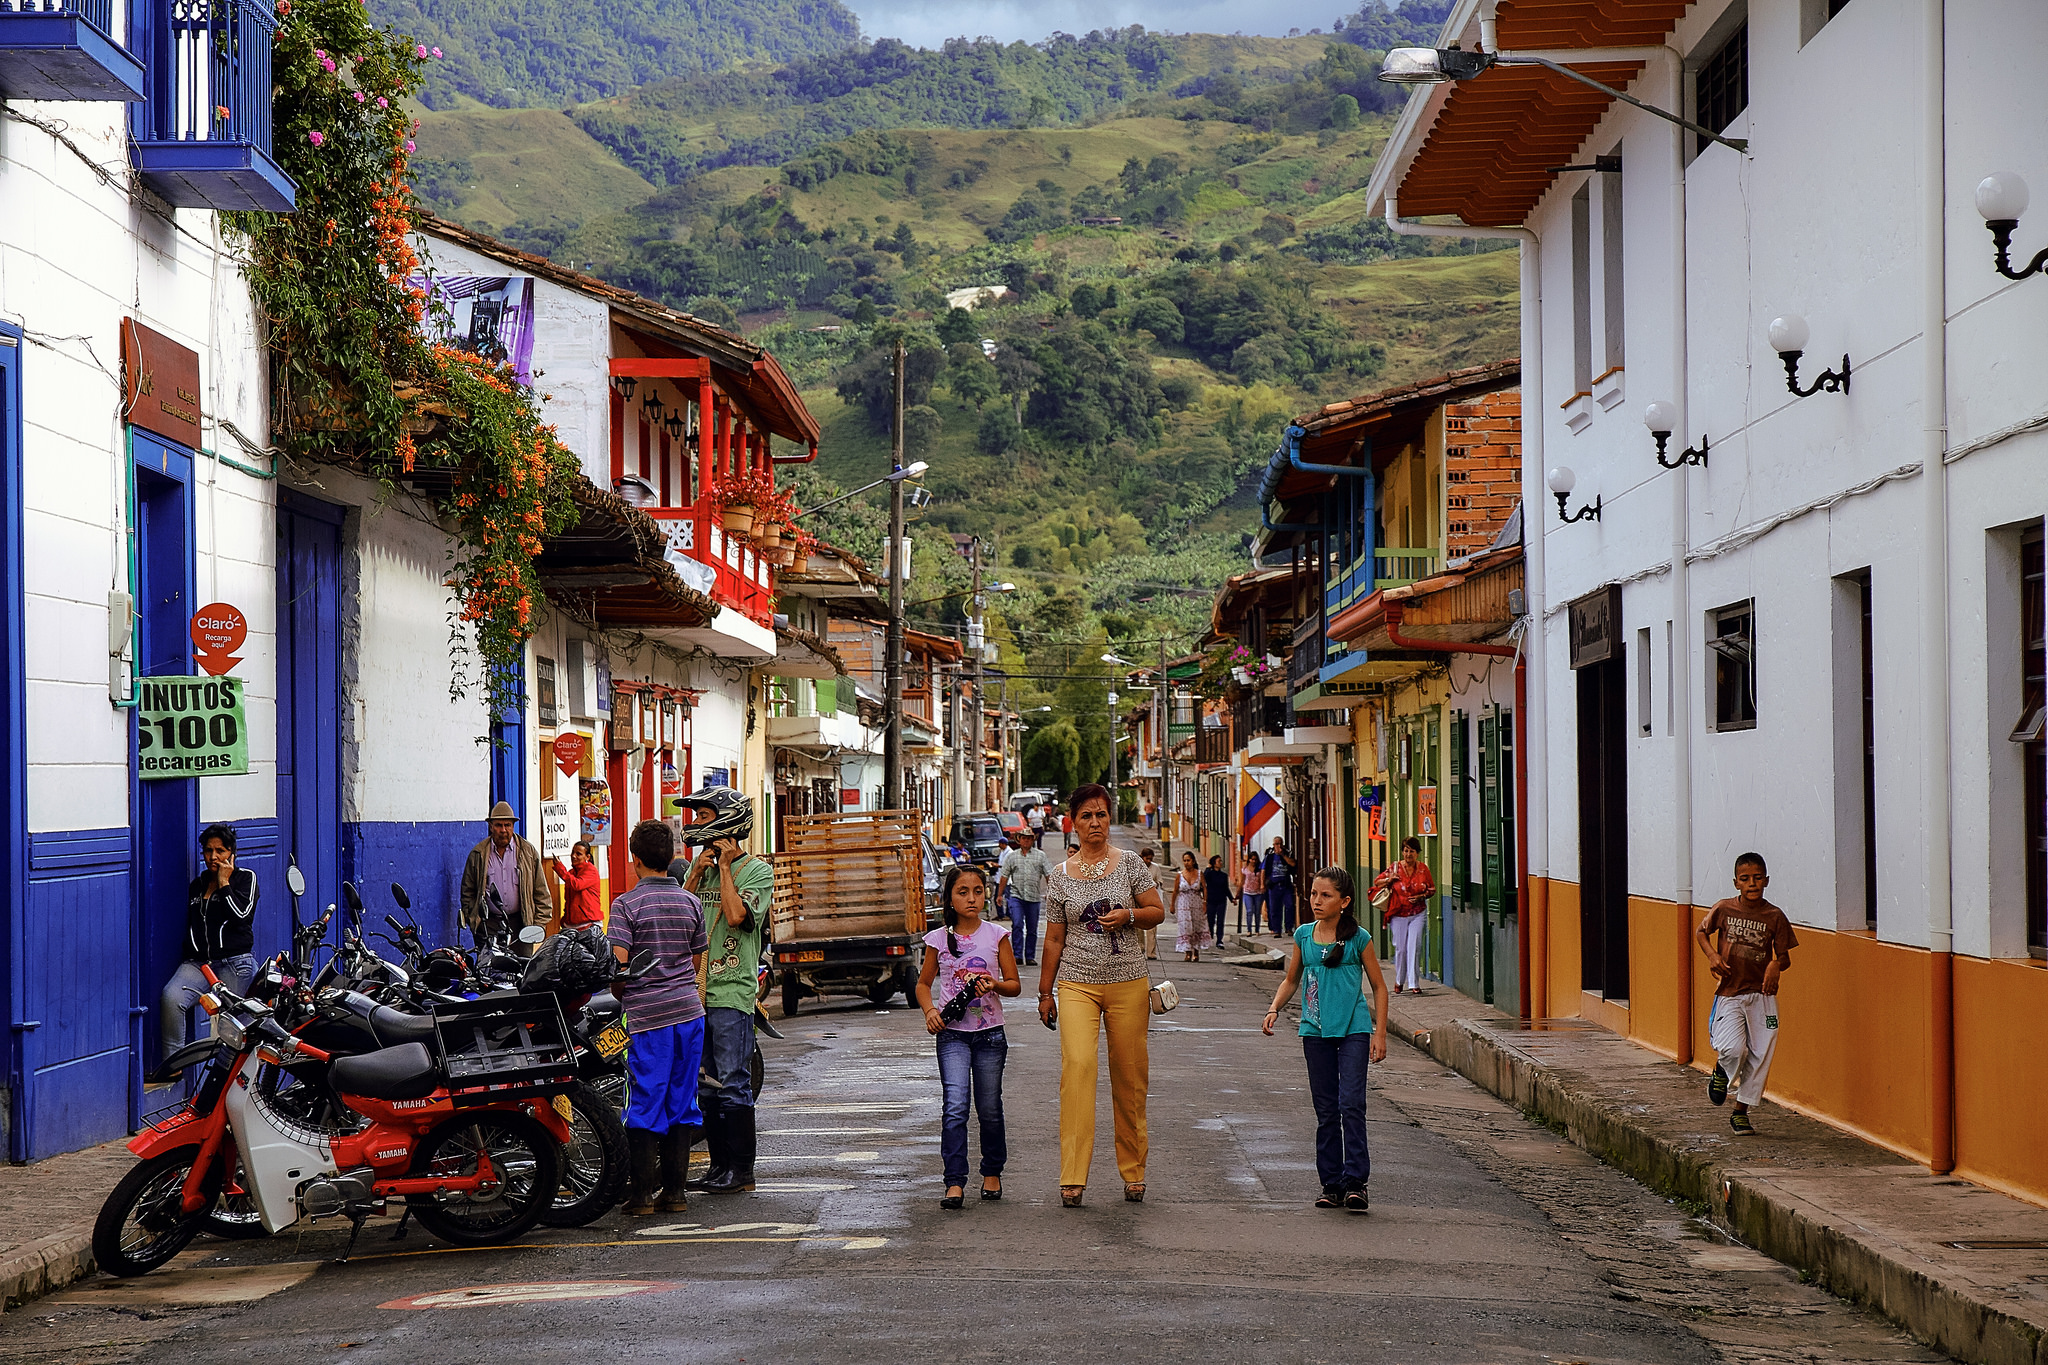 Colombia streets. Photo credit: Pedro Szekely Flickr